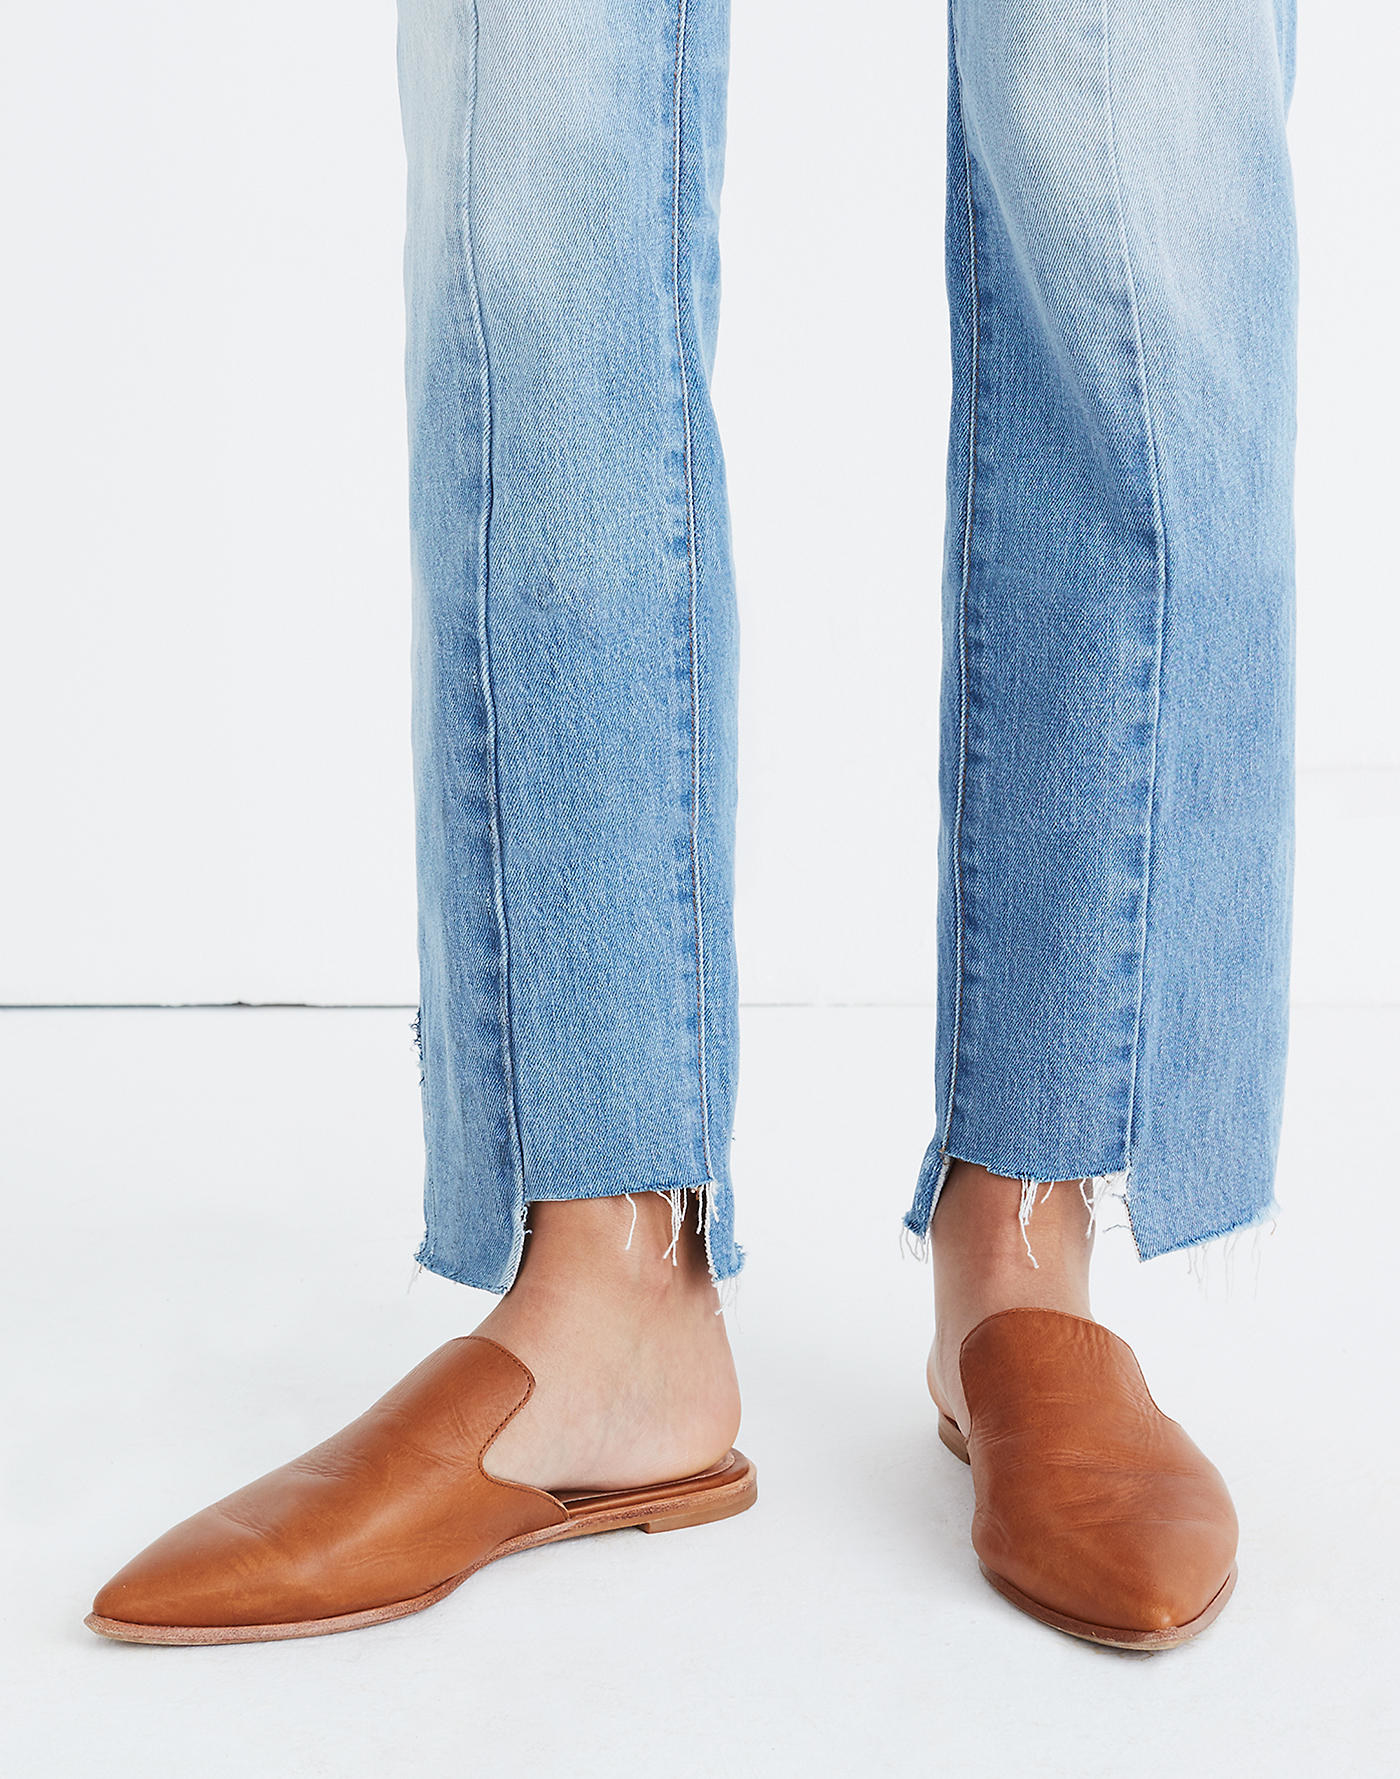 Madewell's The Gemma mule in English Suede